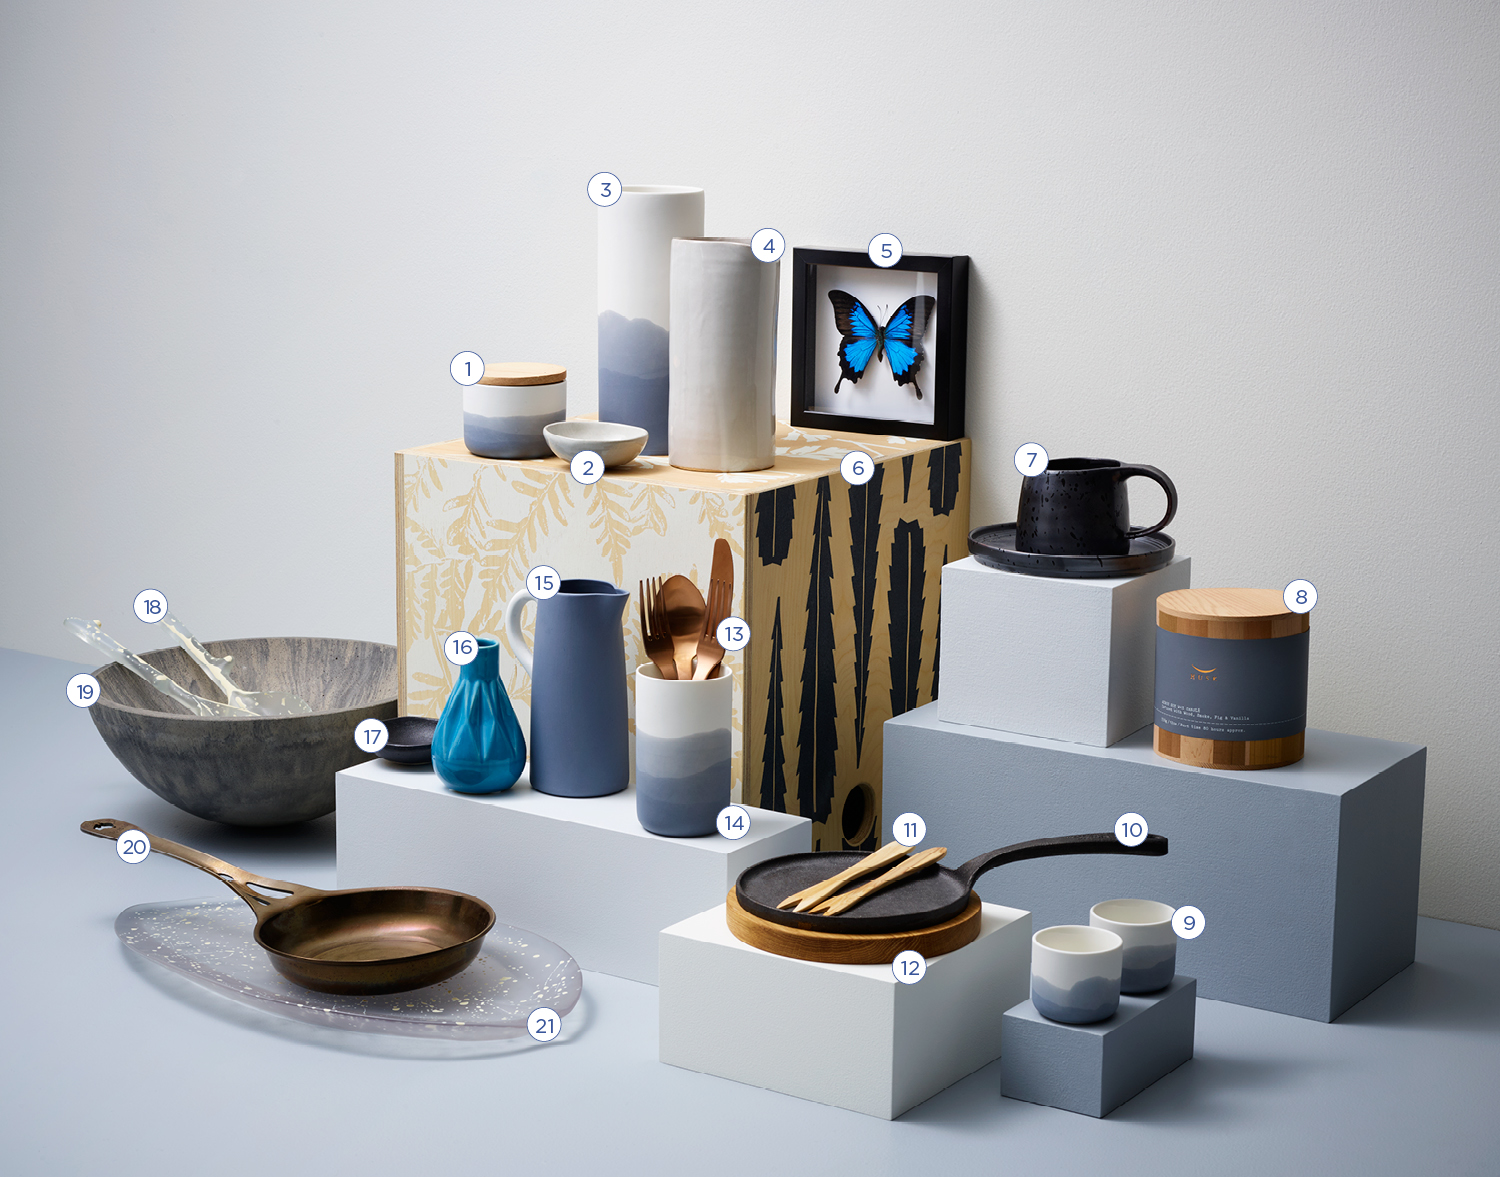 & Christmas gift guide: house proud |City of Melbourne Whatu0027s On blog